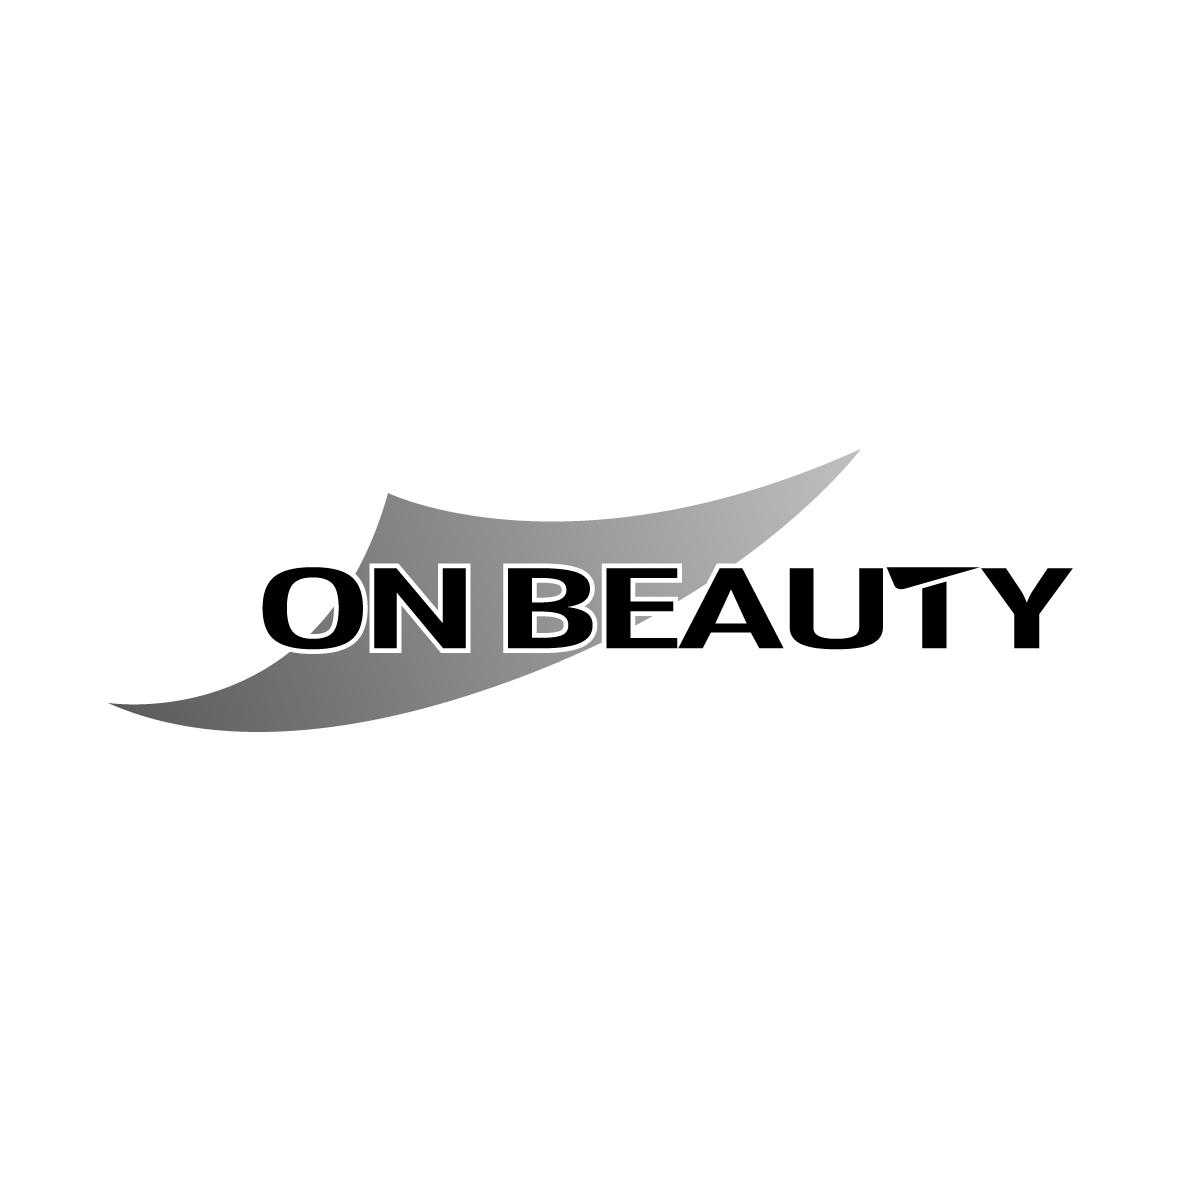 ON BEAUTY